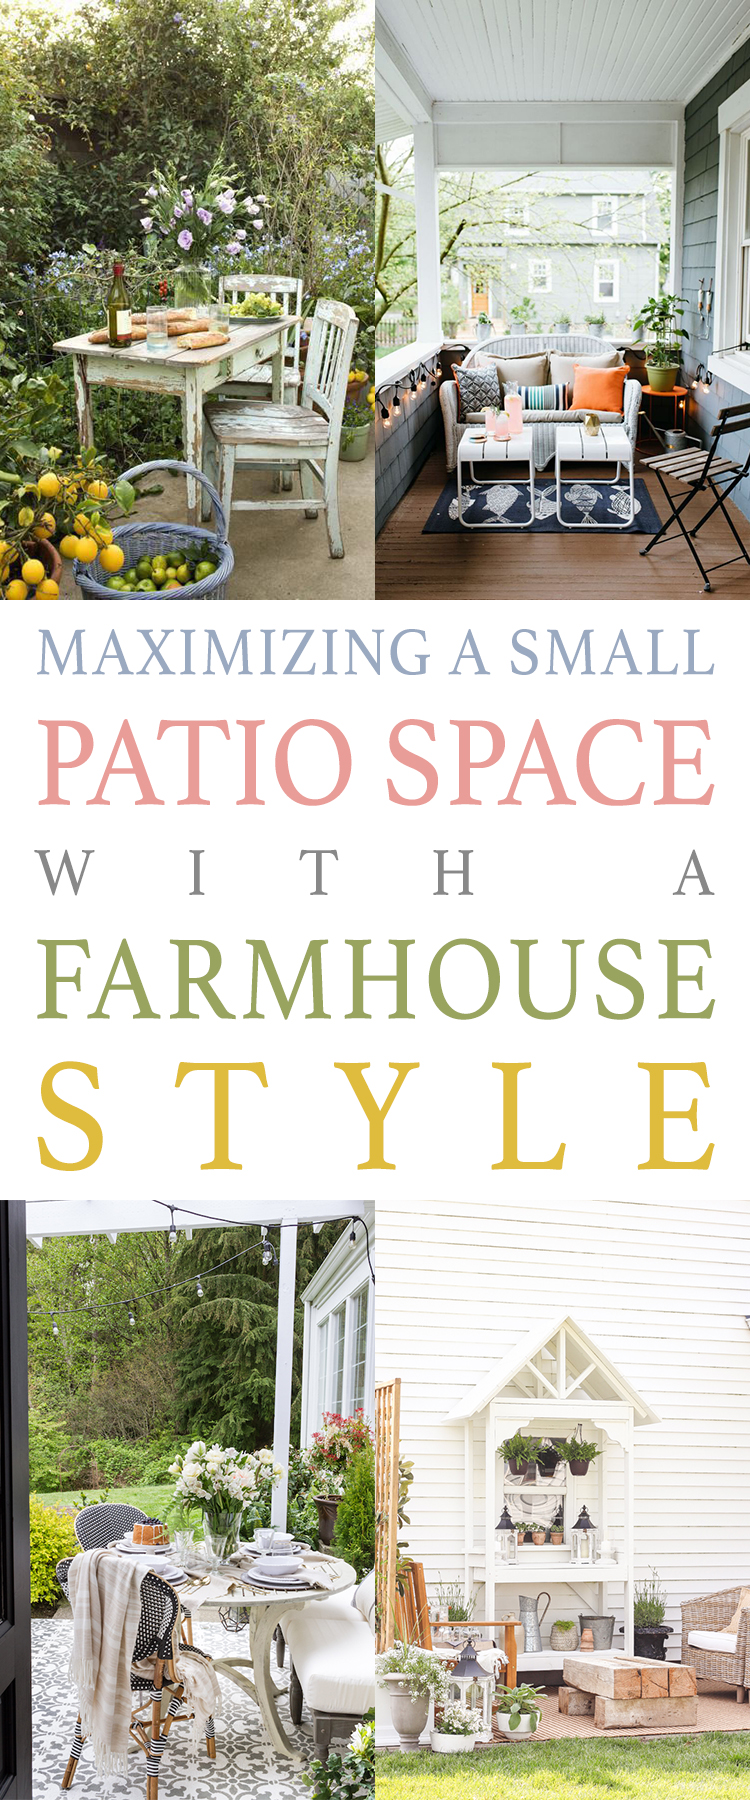 How to Maximize a Small Patio Space with a Farmhouse Style